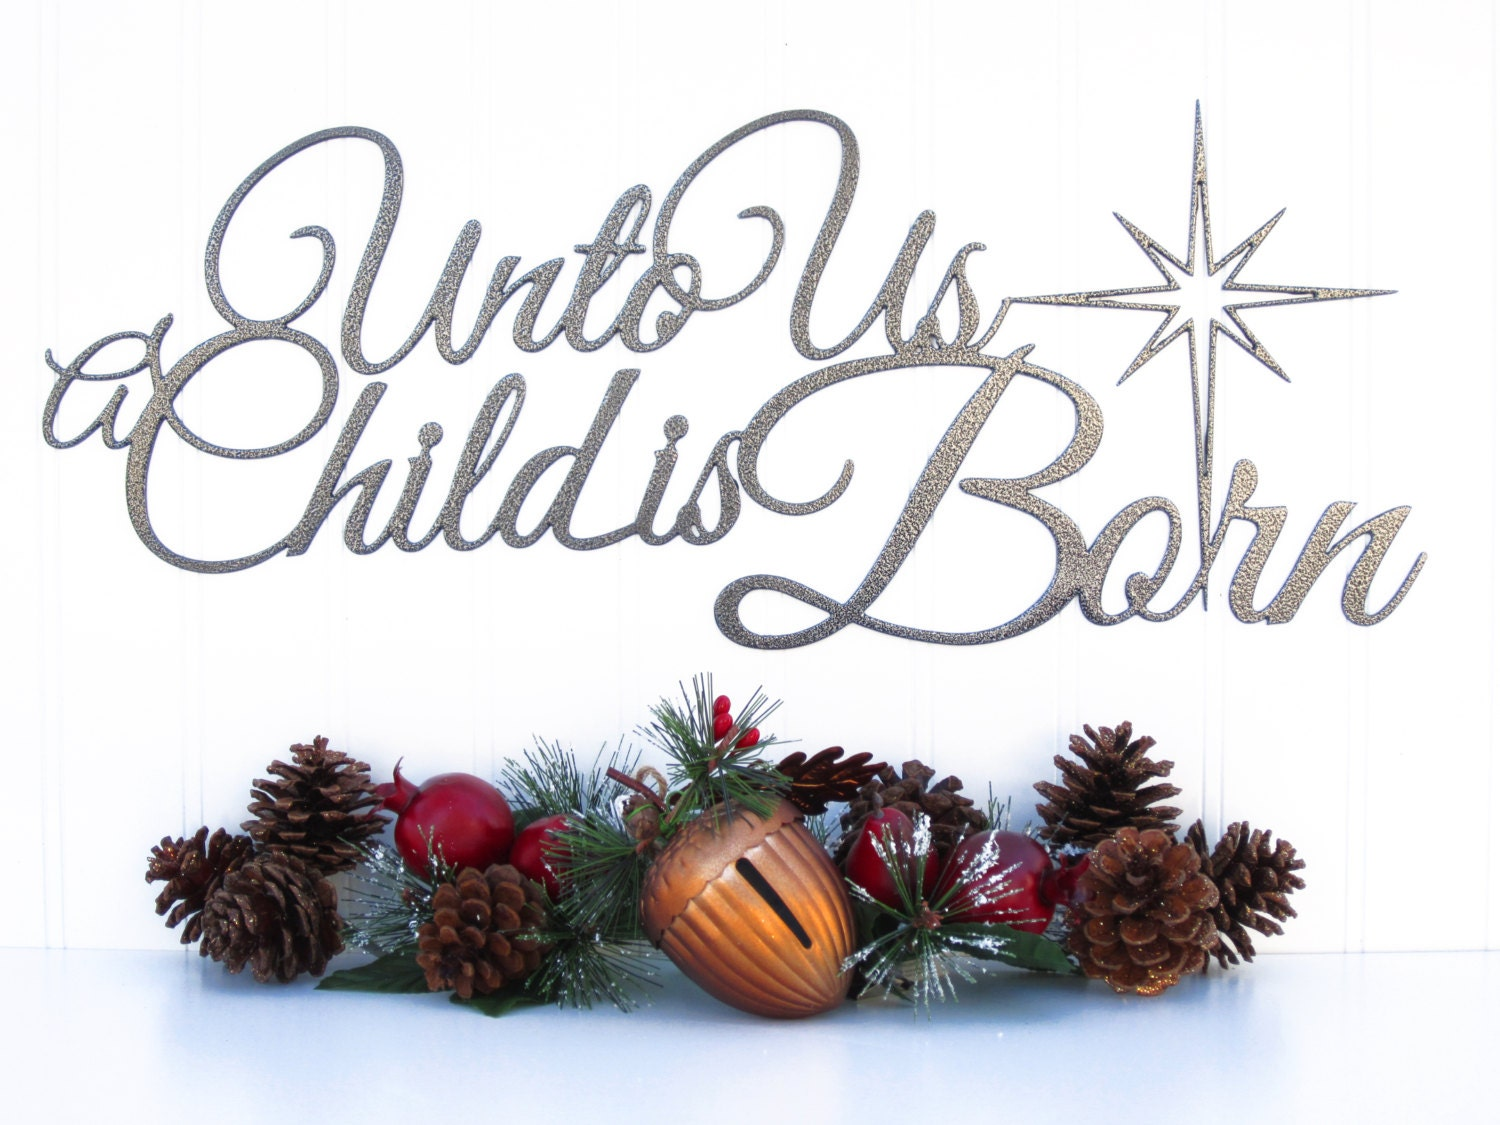 Religious Christmas Quotes Unto Us A Child Is Born Christmas Metal Sign Silver 19.5X8